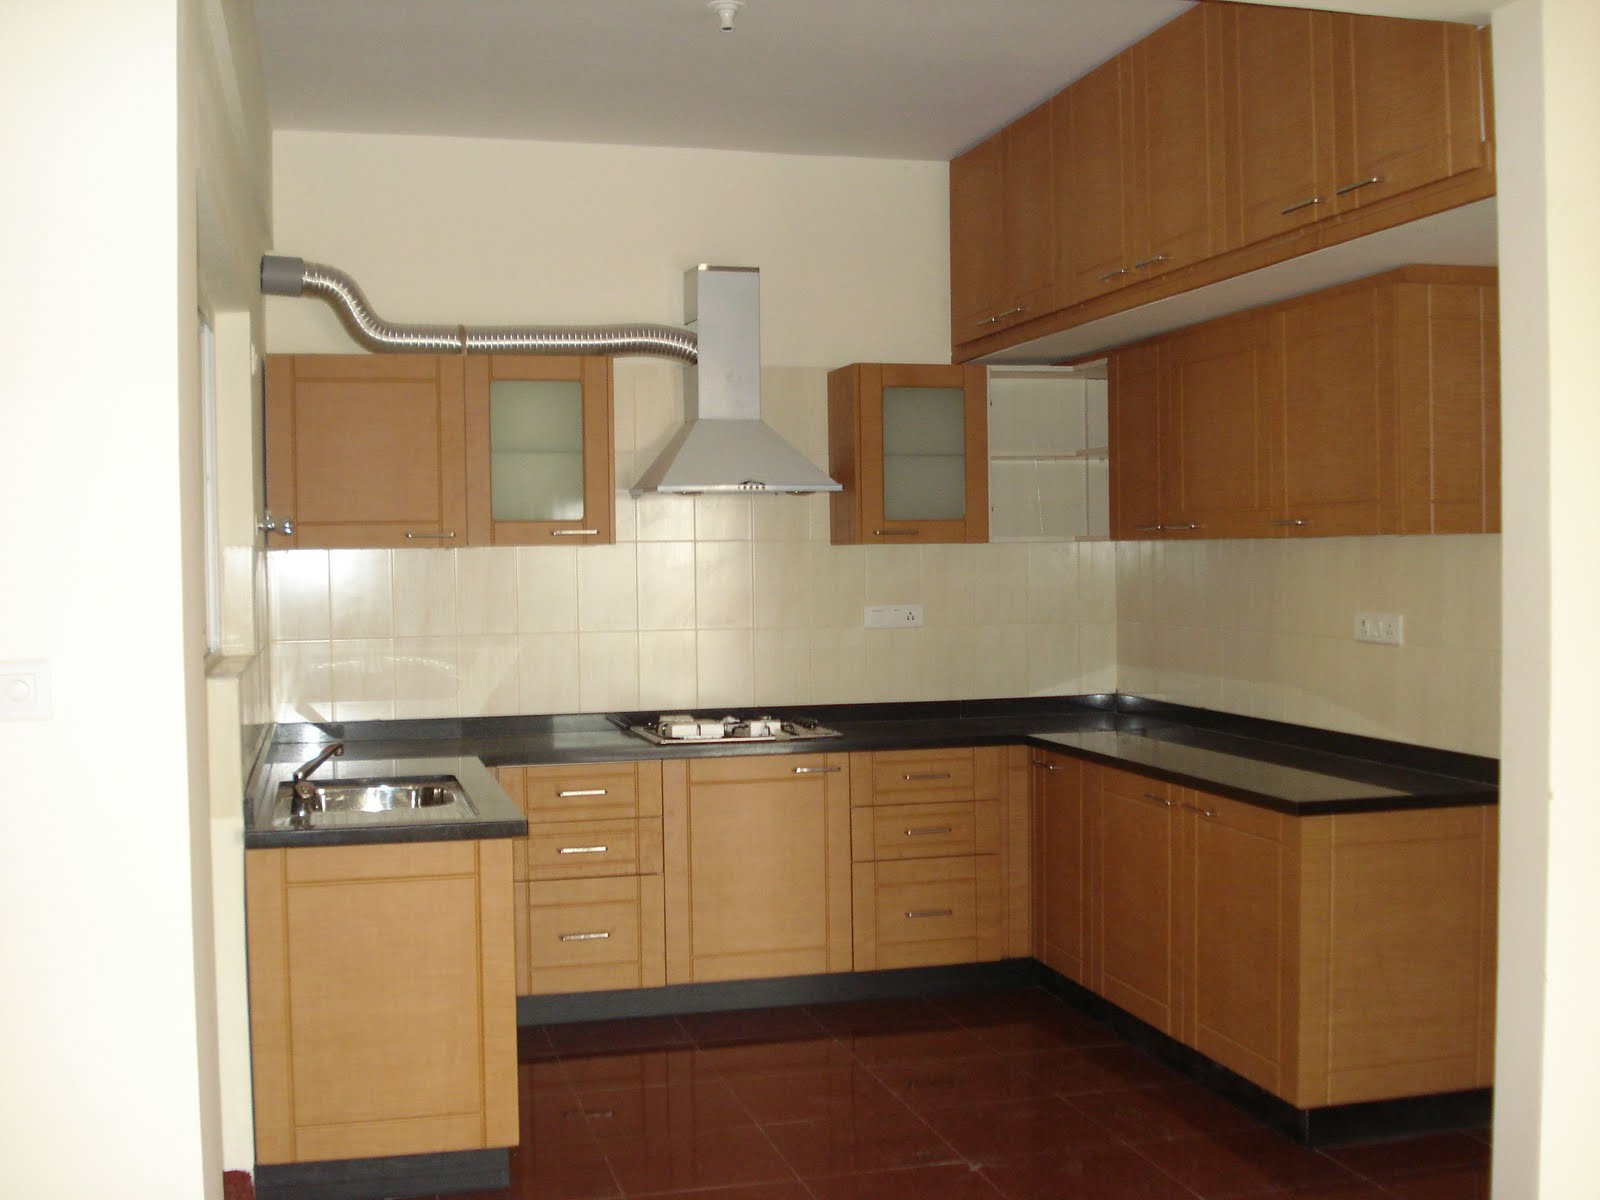 Small indian kitchen design photos - New Material For Interior Design In India Decor For Small Apartments Kitchen